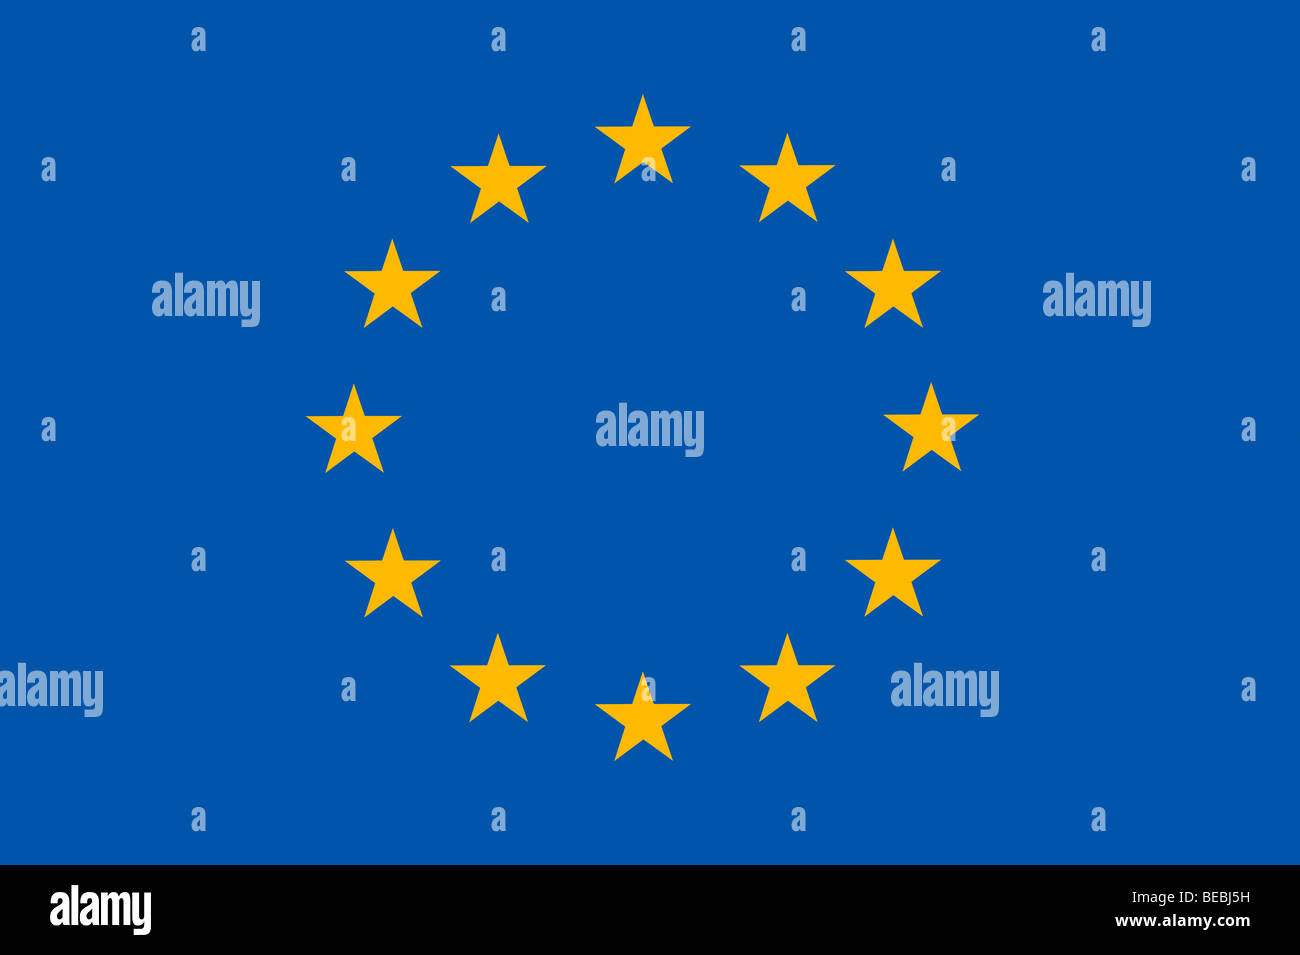 European union flag illustration Stock Photo